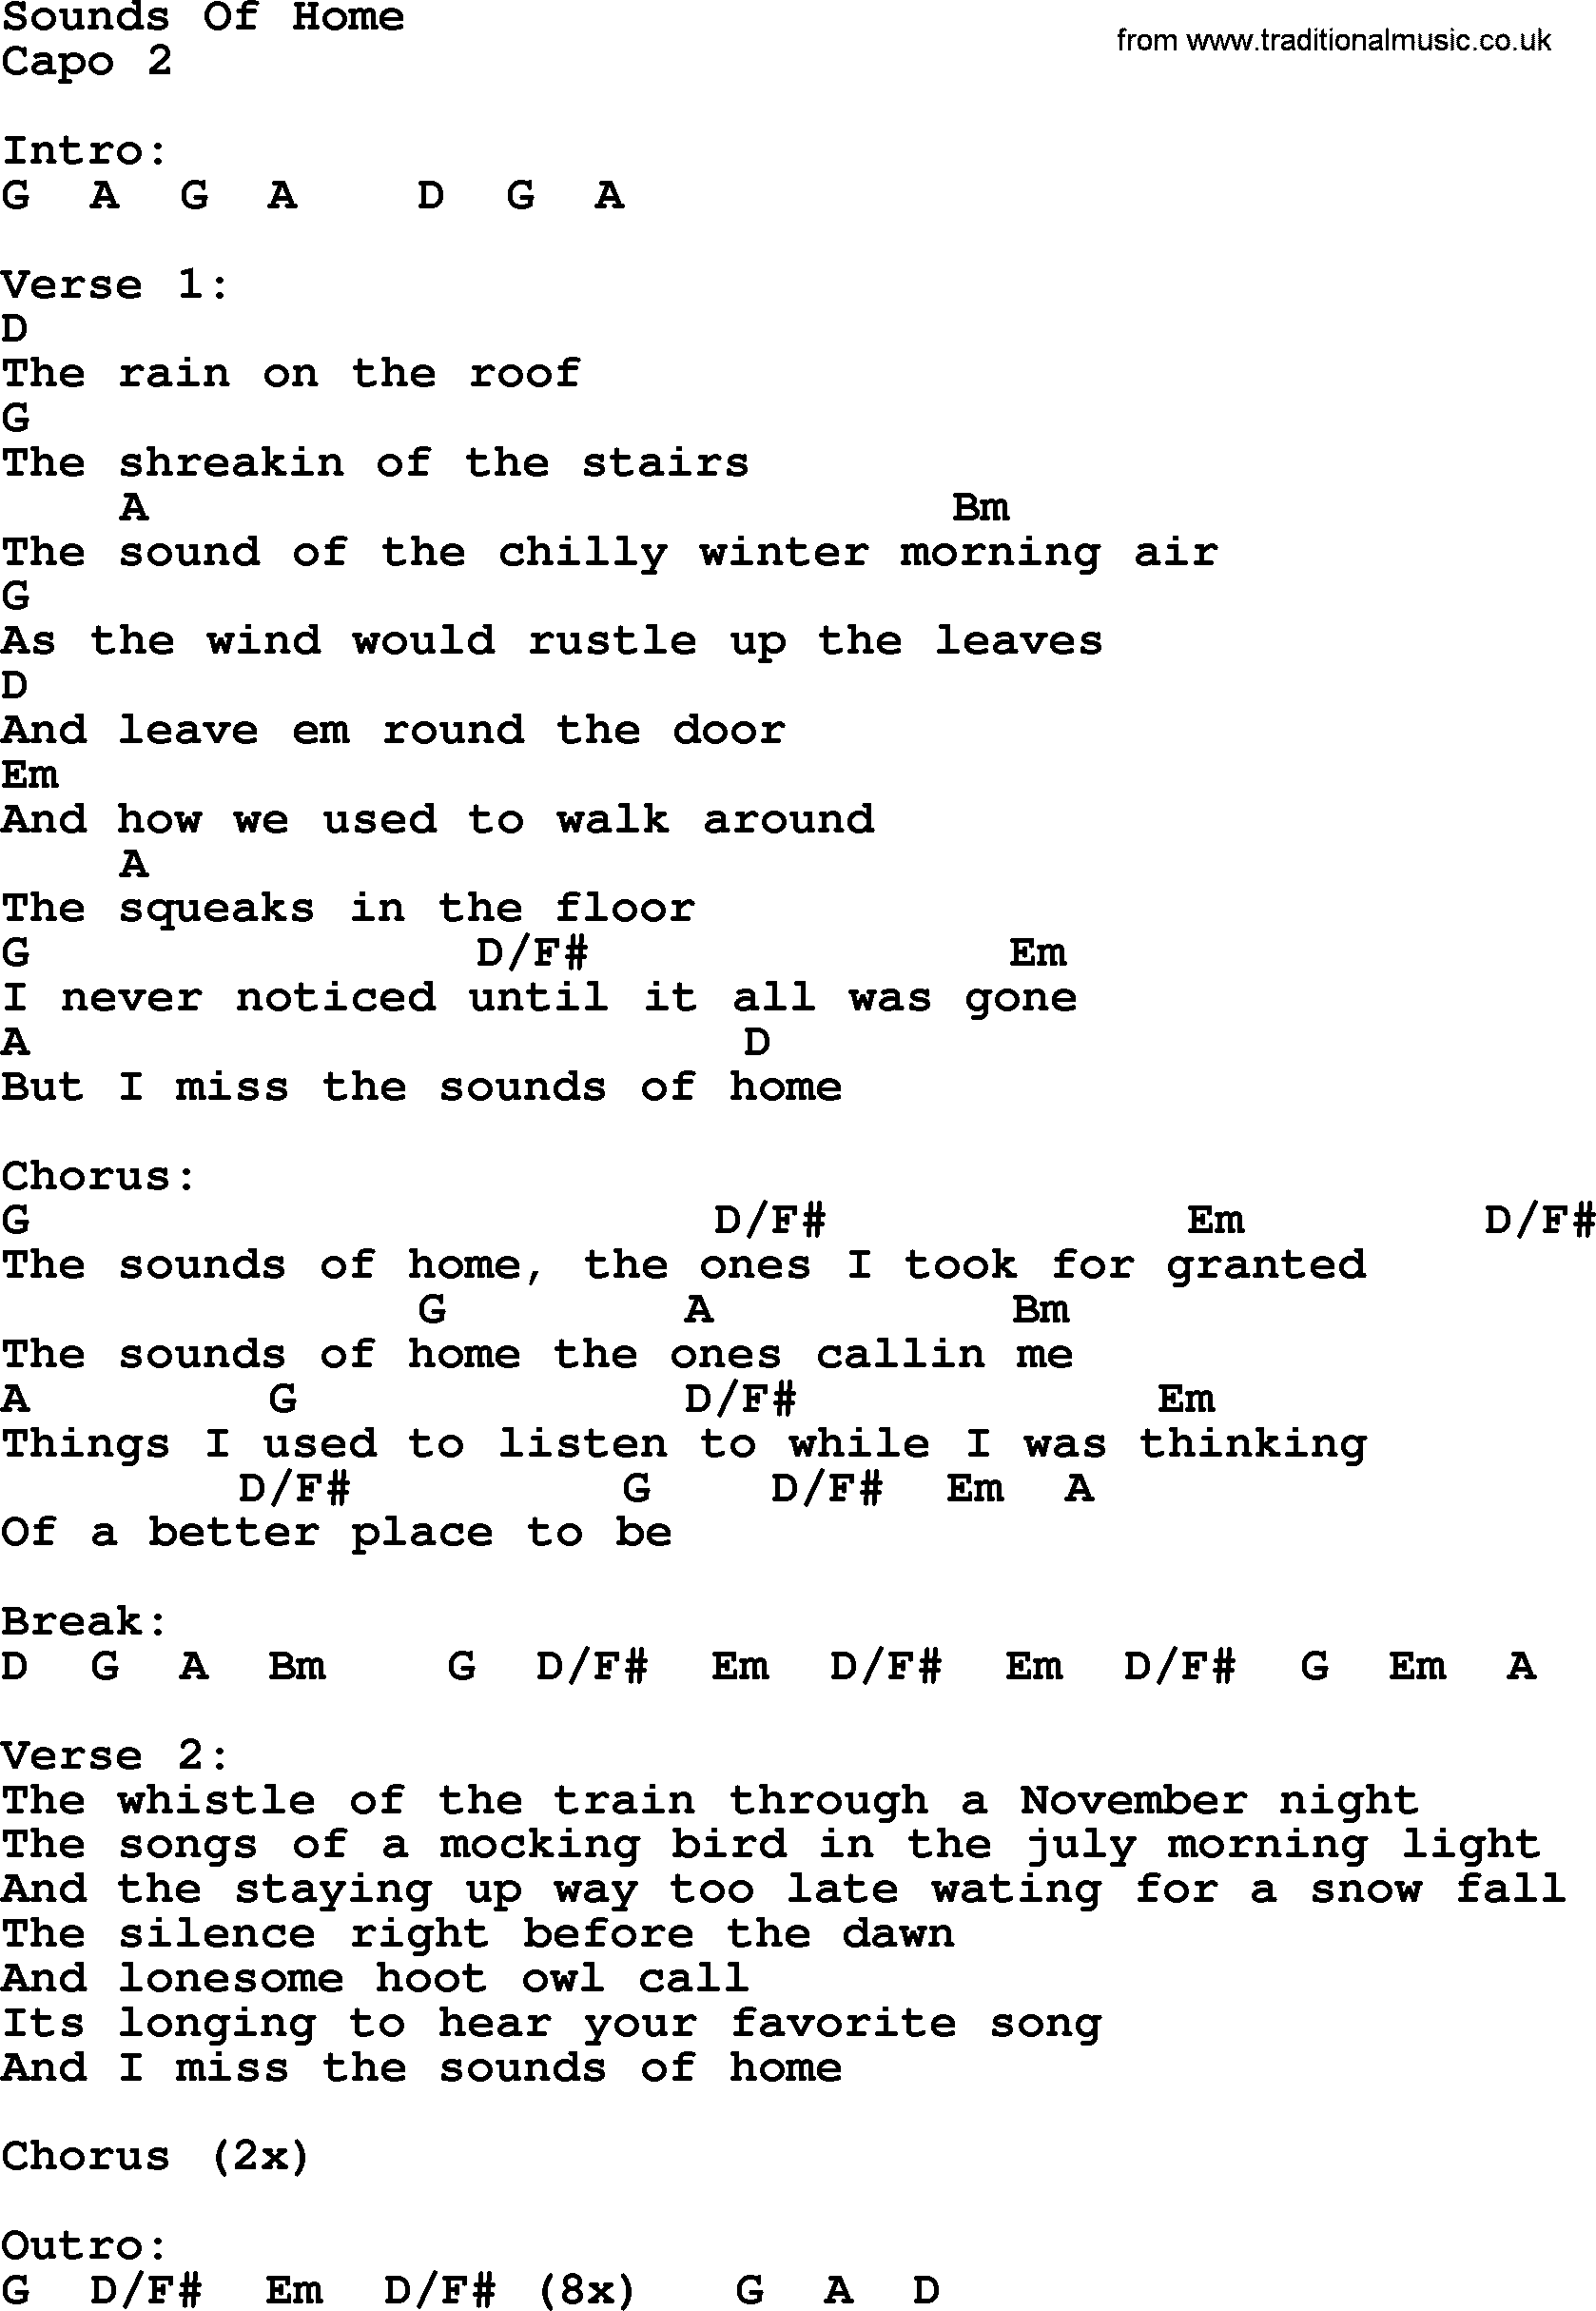 how sweet the sound chords pdf